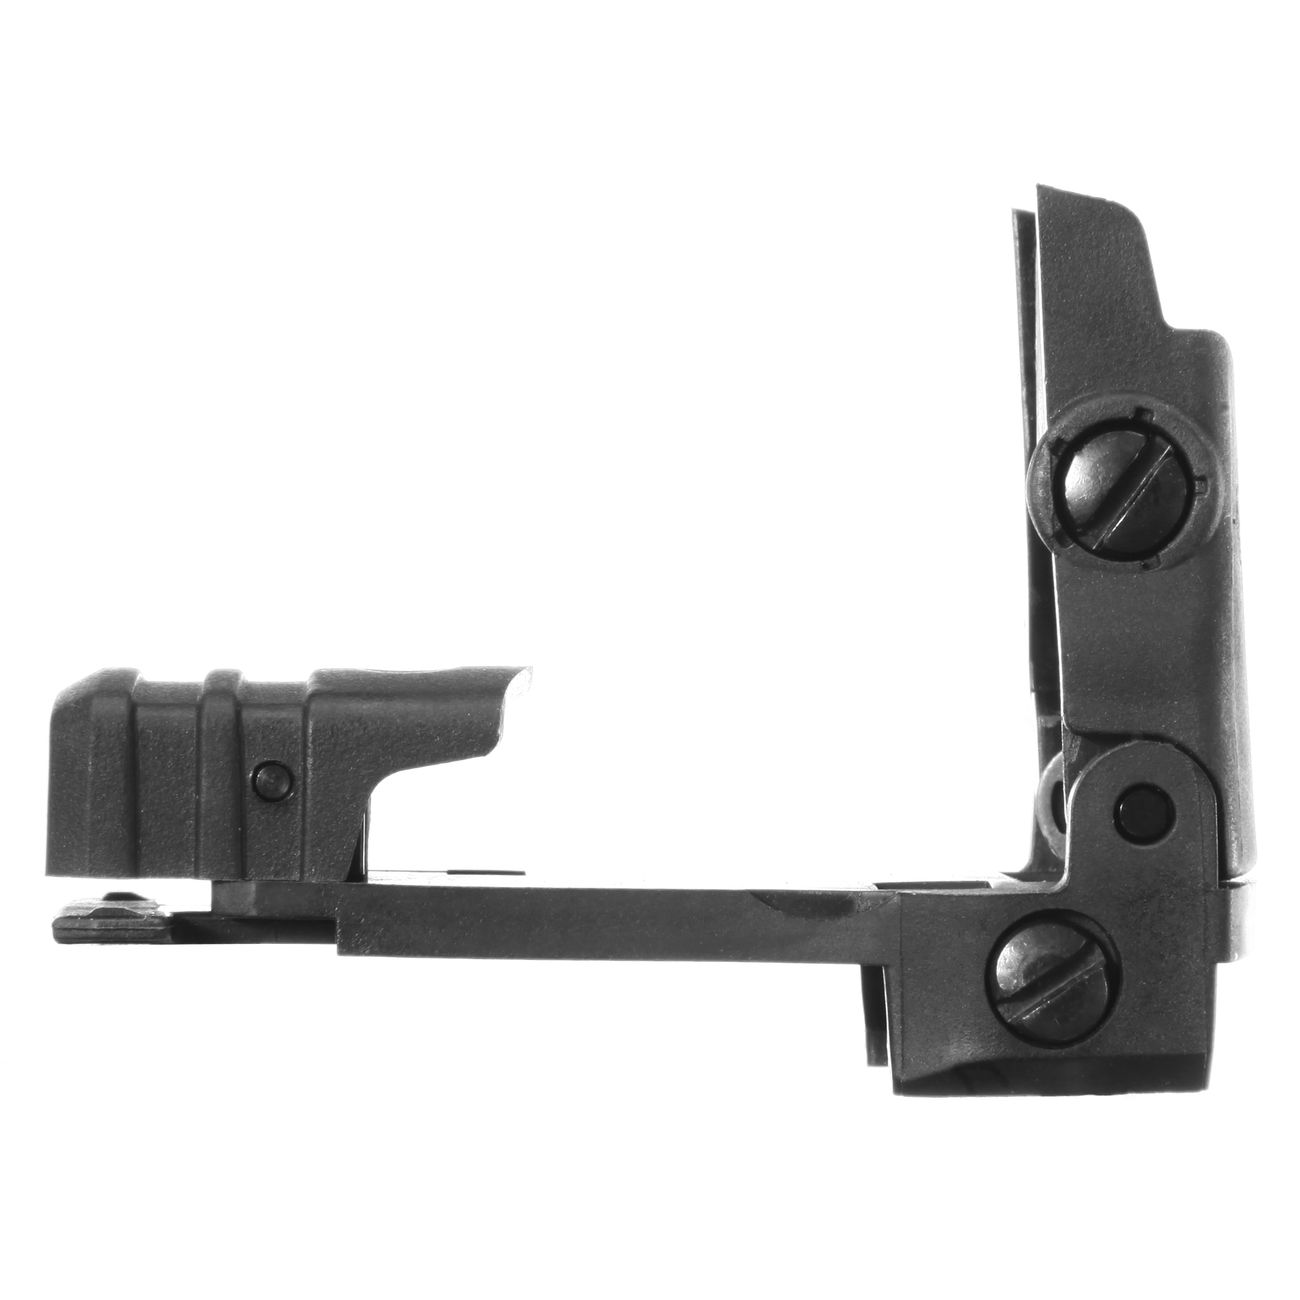 MFT BUPSWR Polymer Flip-Up Rear Sight f. 21mm Schienen schwarz 3